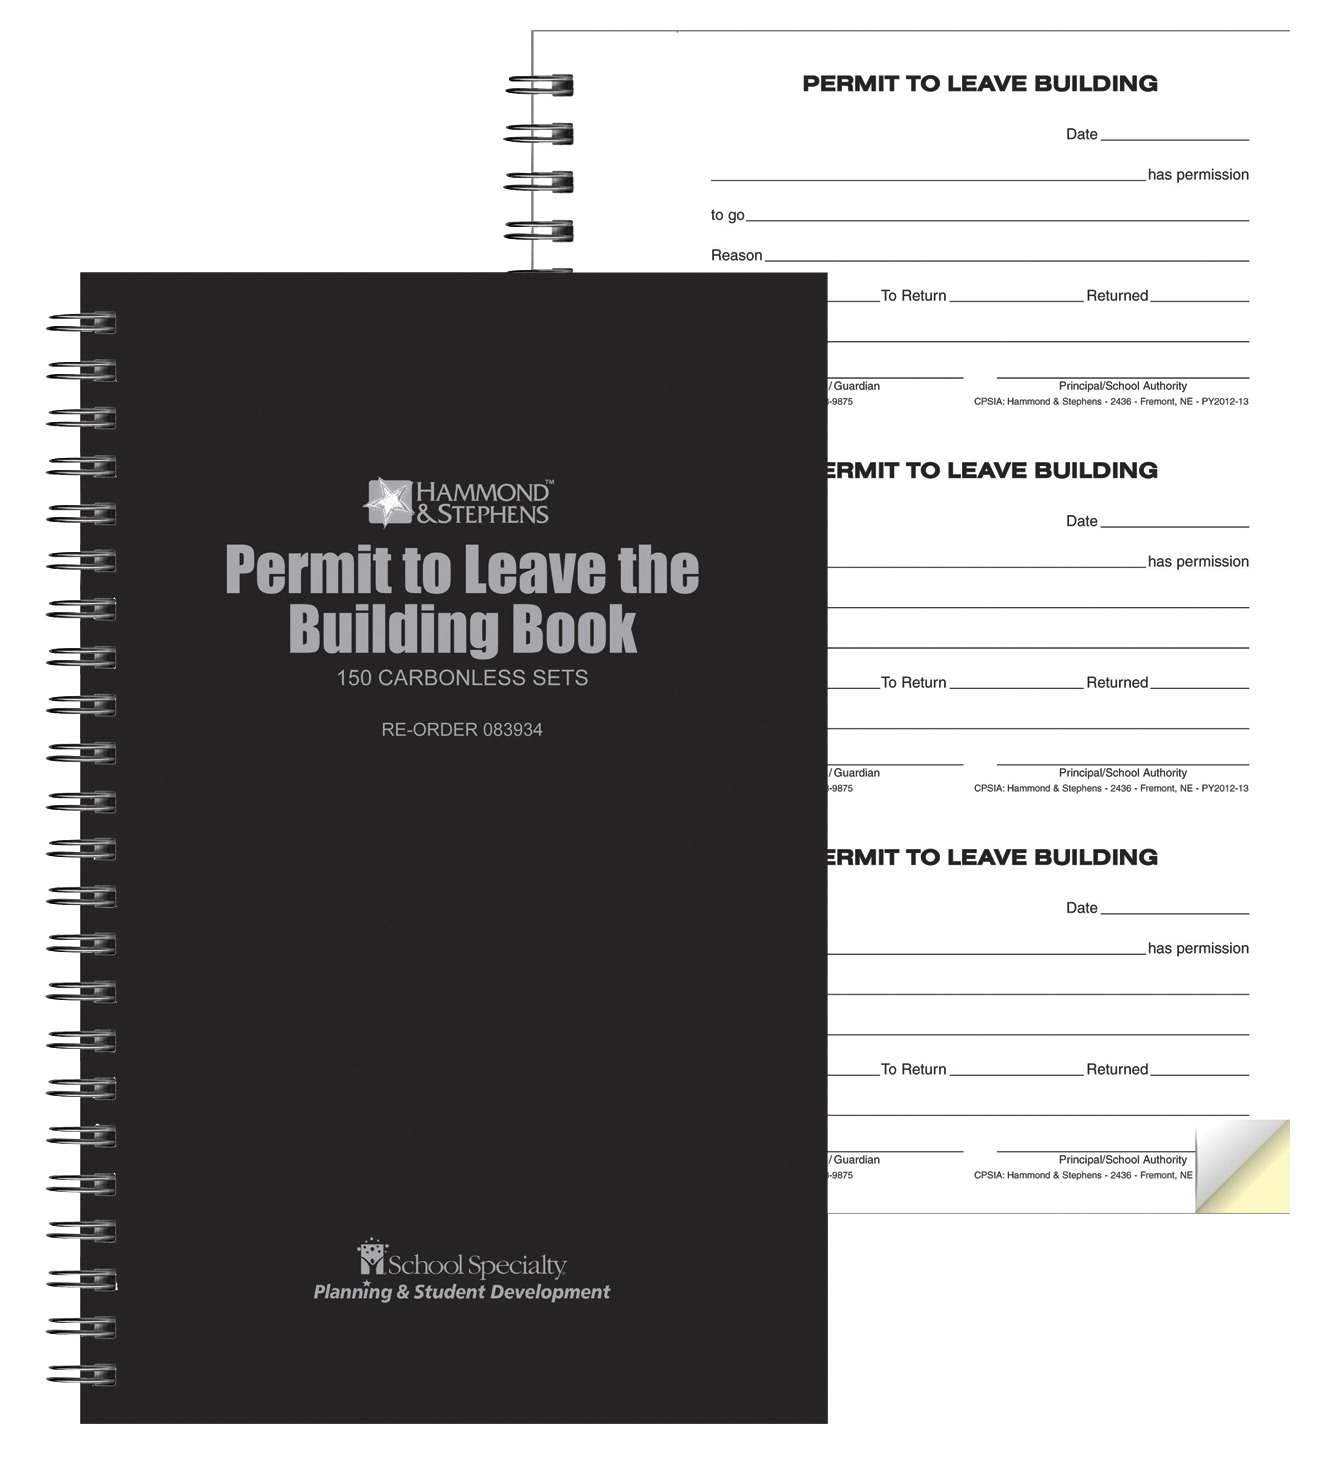 Hammond & Stephens Permit to Leave Building Book, 2-Ply, Carbonless, 5-1/2 x 8-5/8 Inches